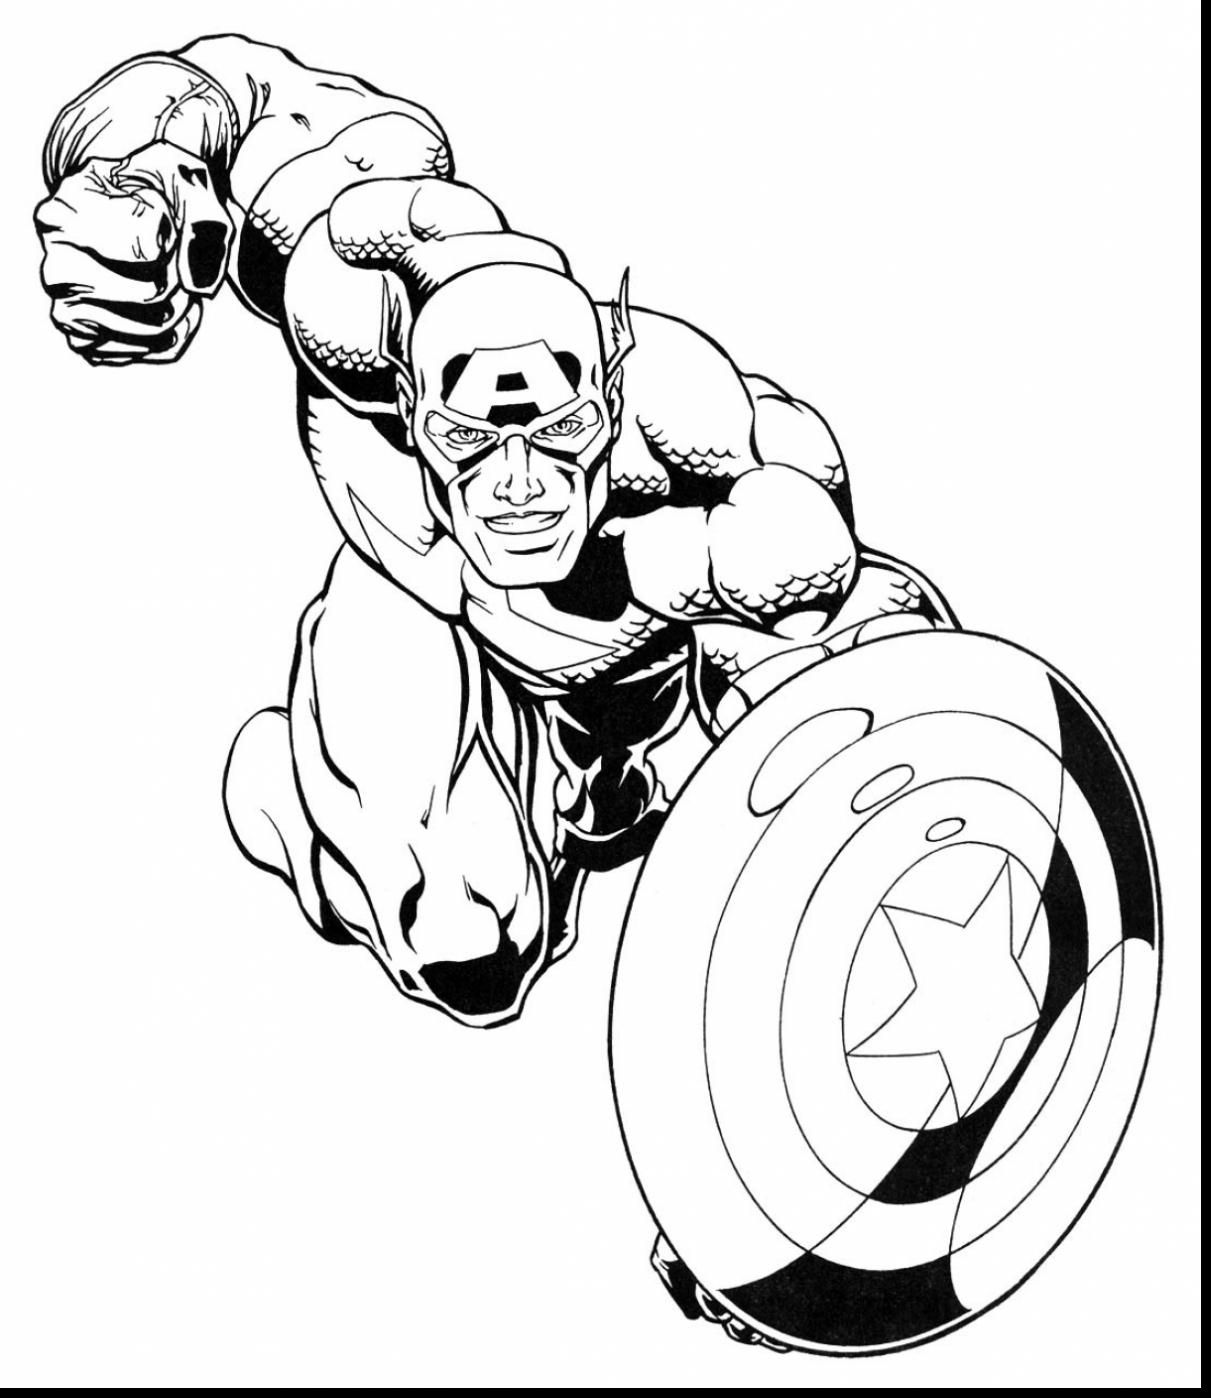 incredible marvel super heroes coloring pages with super hero